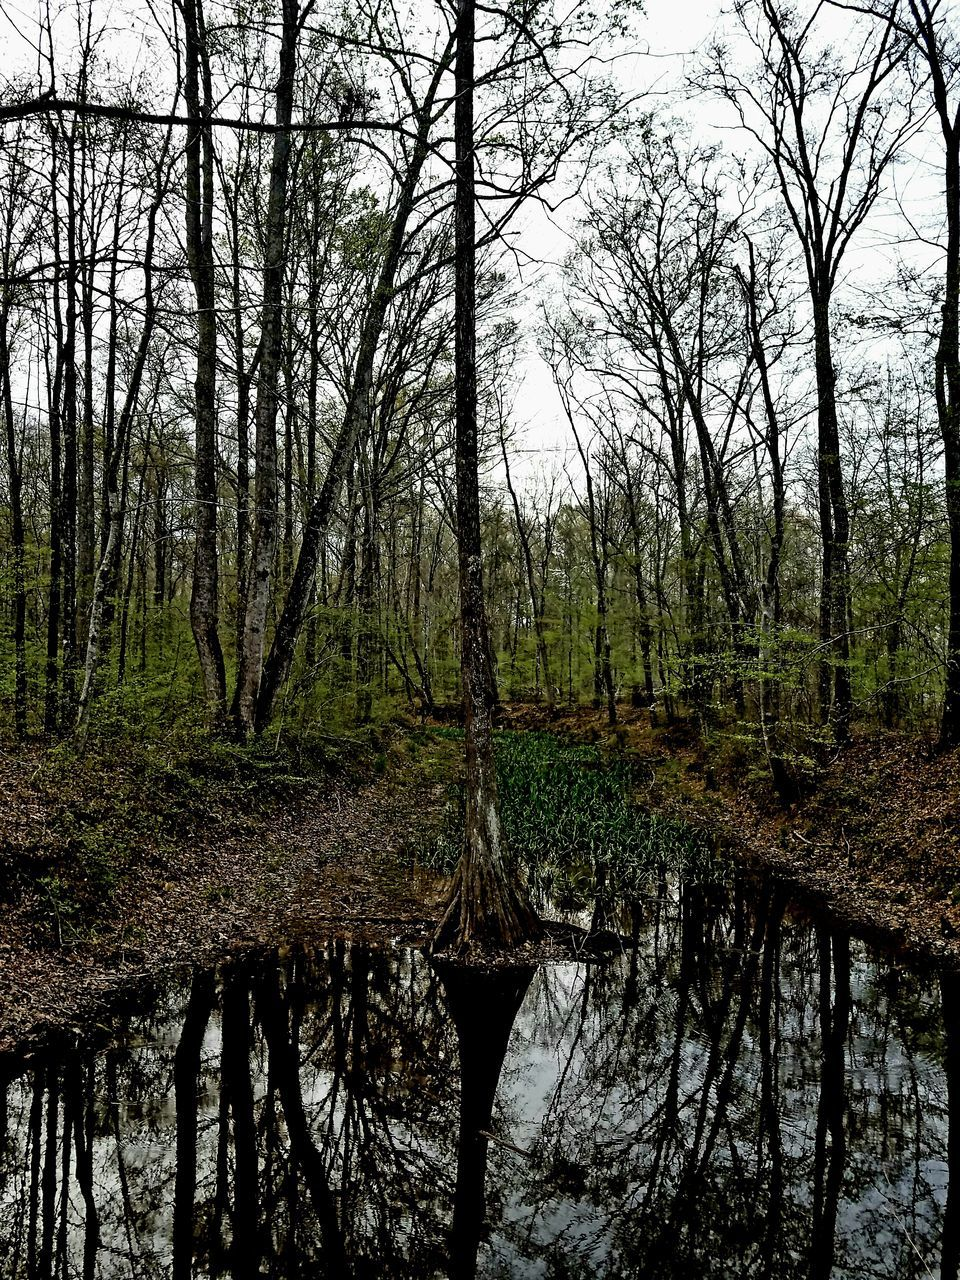 tree, tranquility, nature, forest, tranquil scene, beauty in nature, scenics, water, outdoors, day, bare tree, reflection, tree trunk, branch, no people, sky